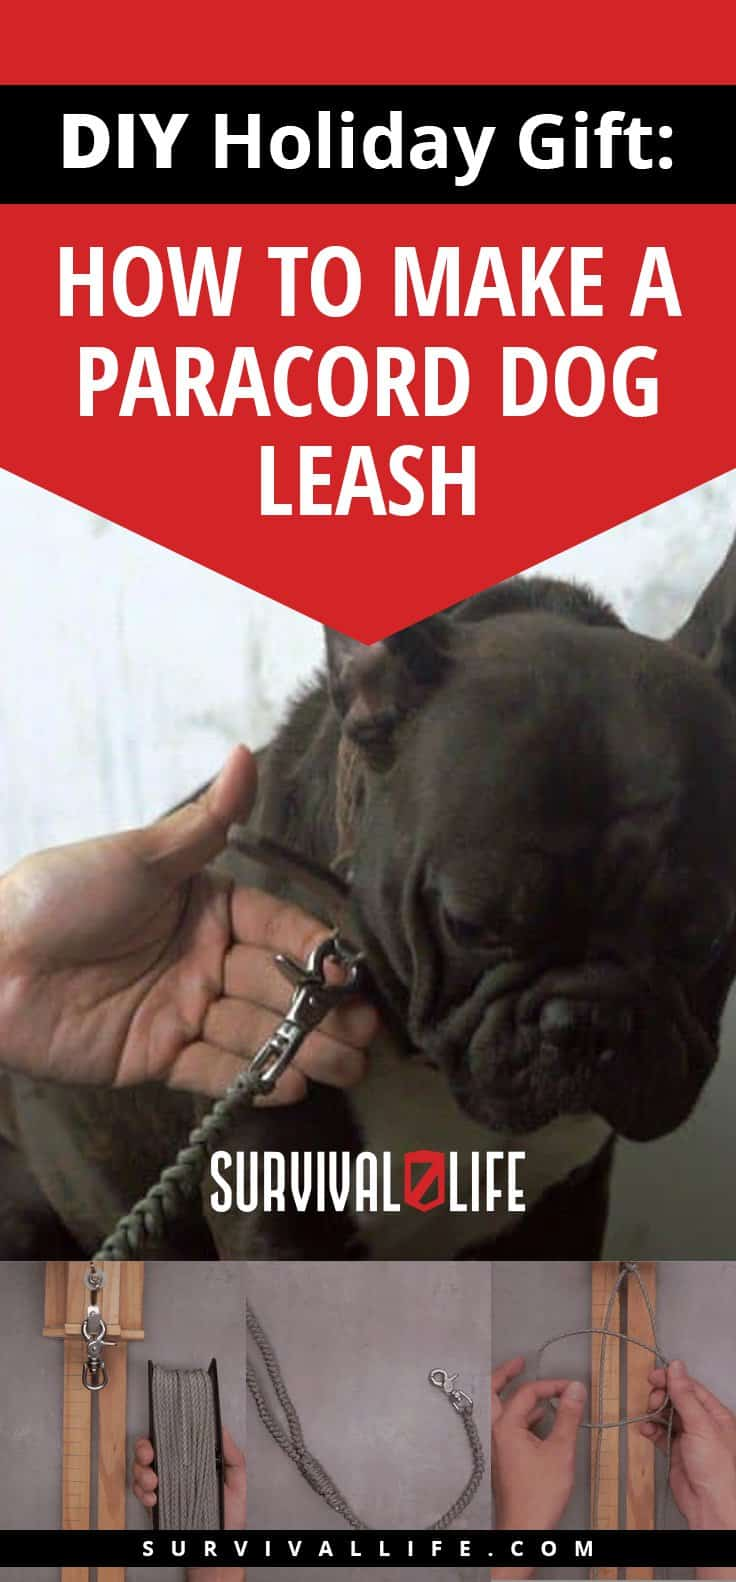 Placard | DIY Holiday Gift: How To Make A Paracord Dog Leash | paracord dog leash round braid